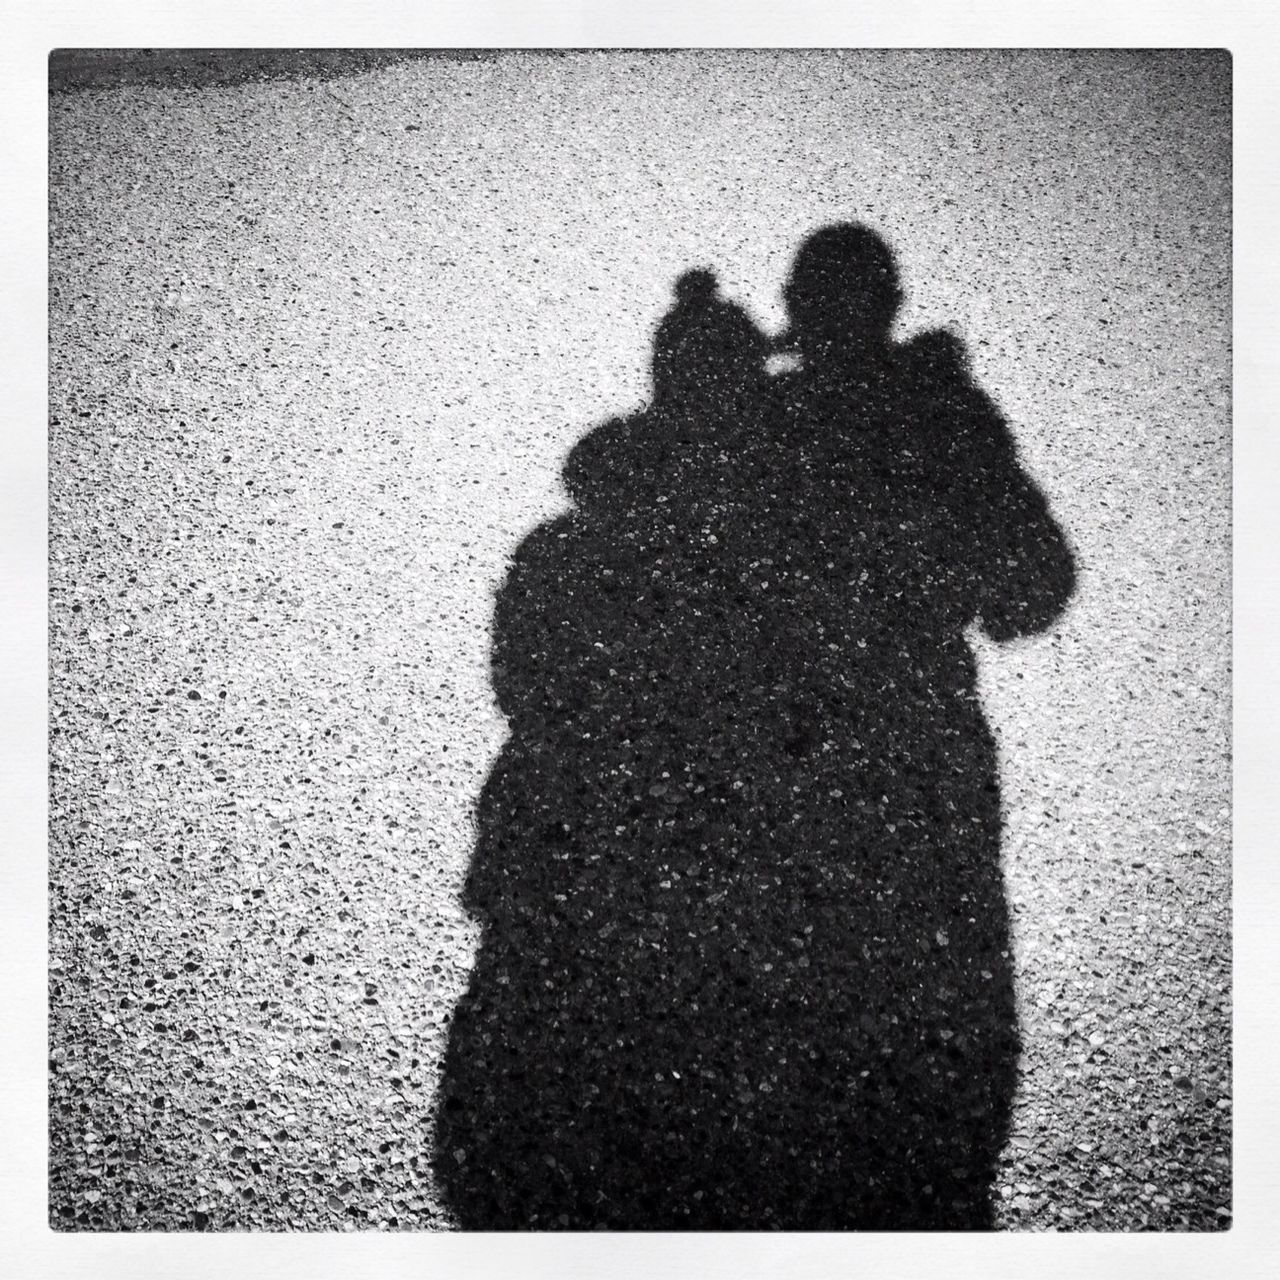 shadow, focus on shadow, two people, togetherness, love, real people, men, sunlight, day, high angle view, standing, silhouette, outdoors, couple - relationship, bonding, beach, people